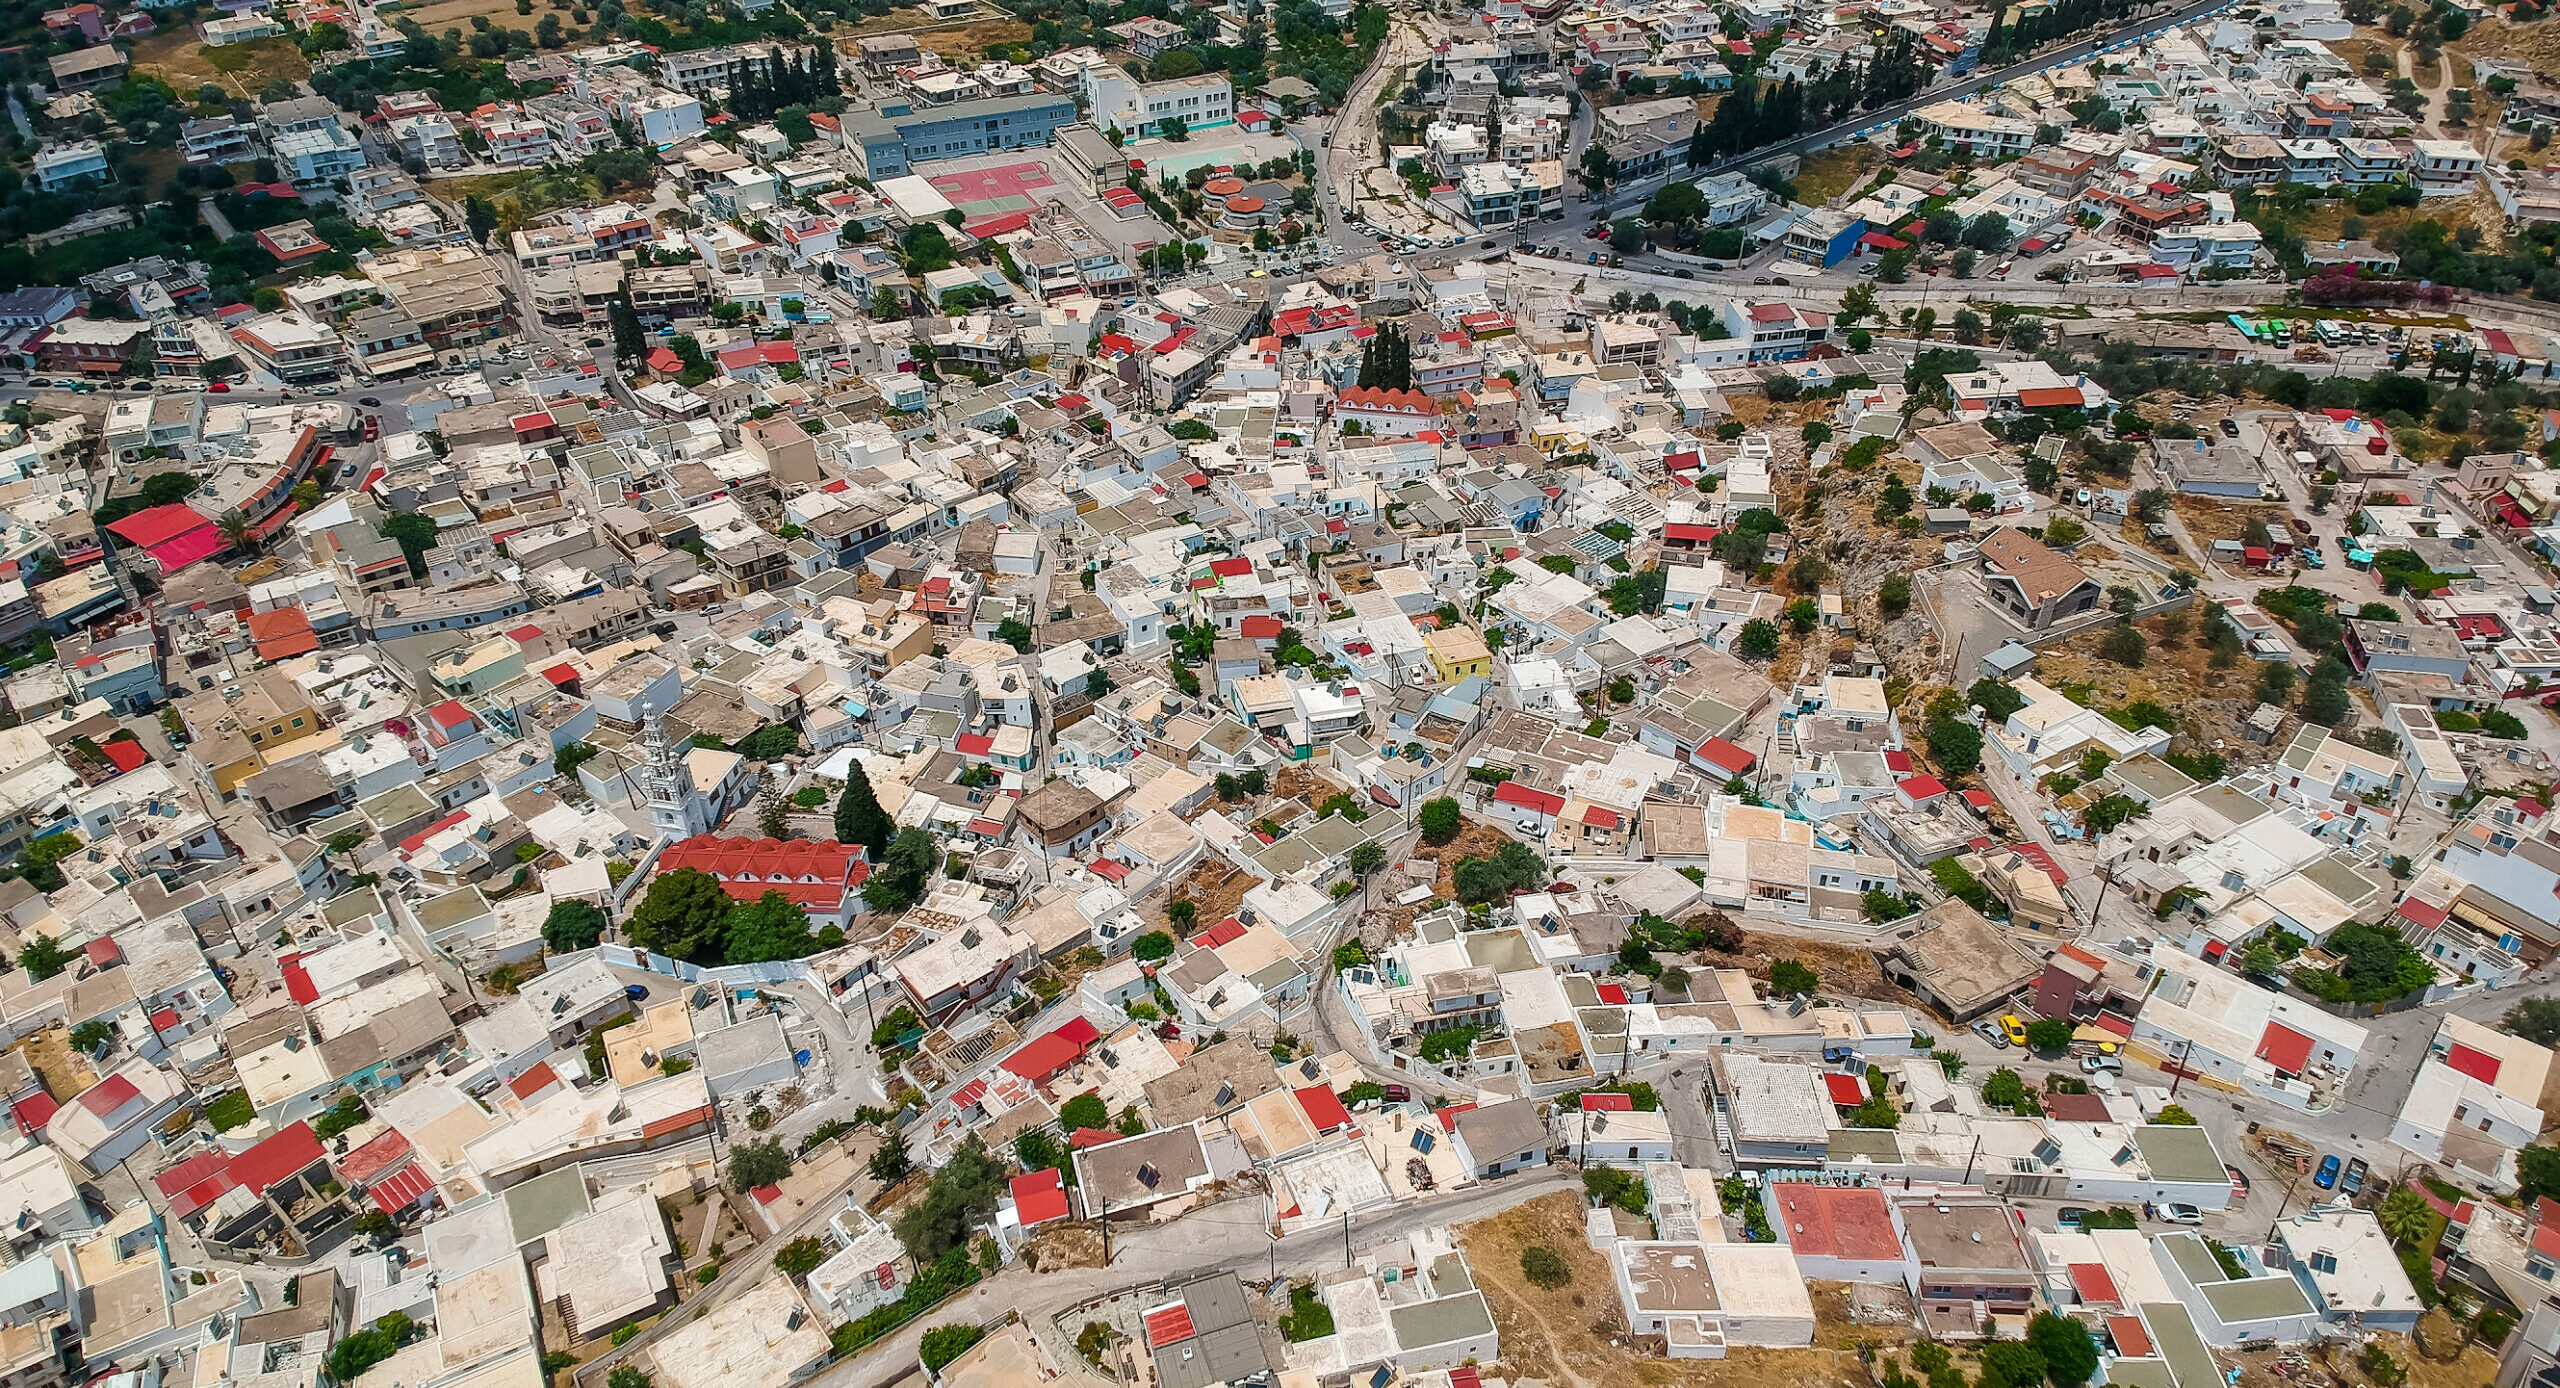 The Greek village that has its own distinct dialect